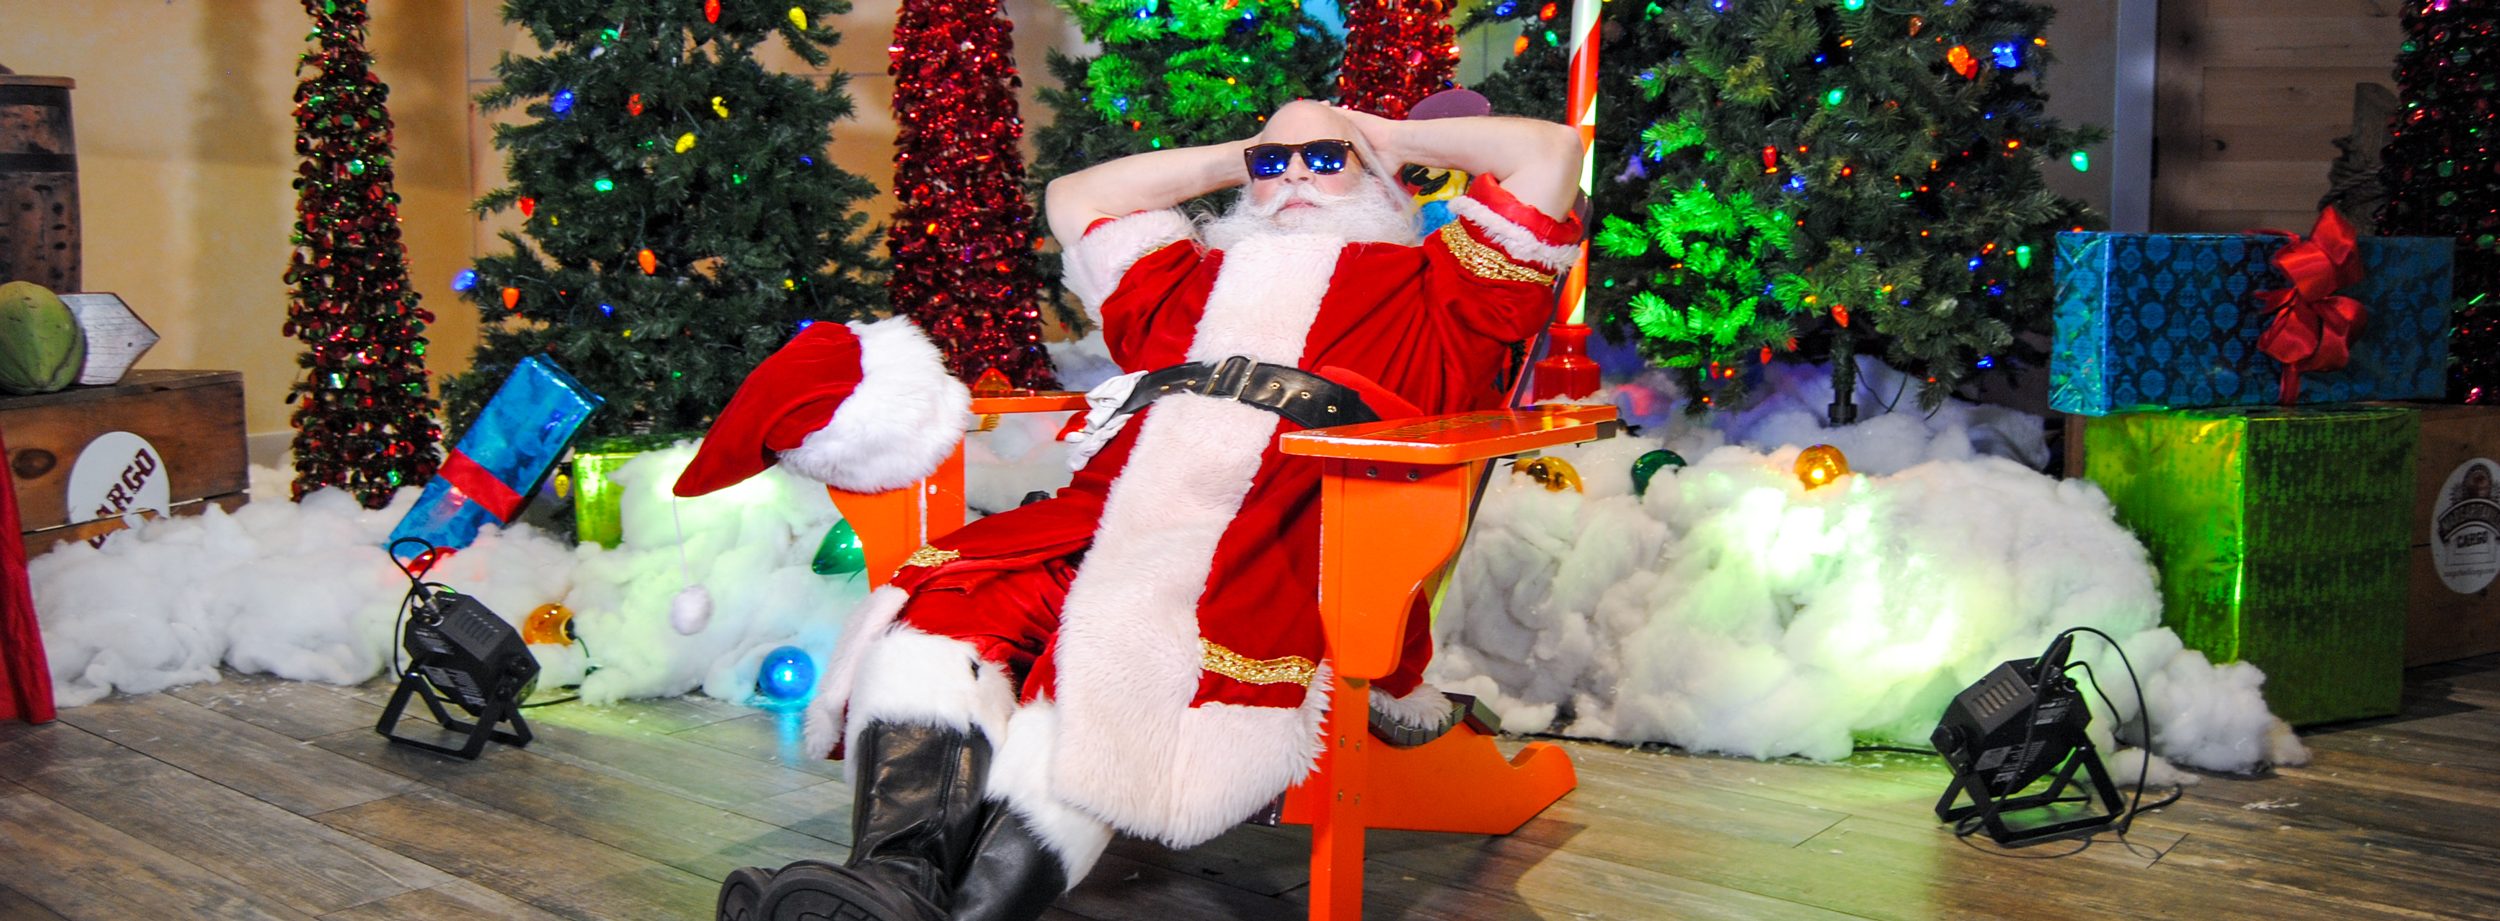 Santa Photos at Margaritaville Resort Biloxi